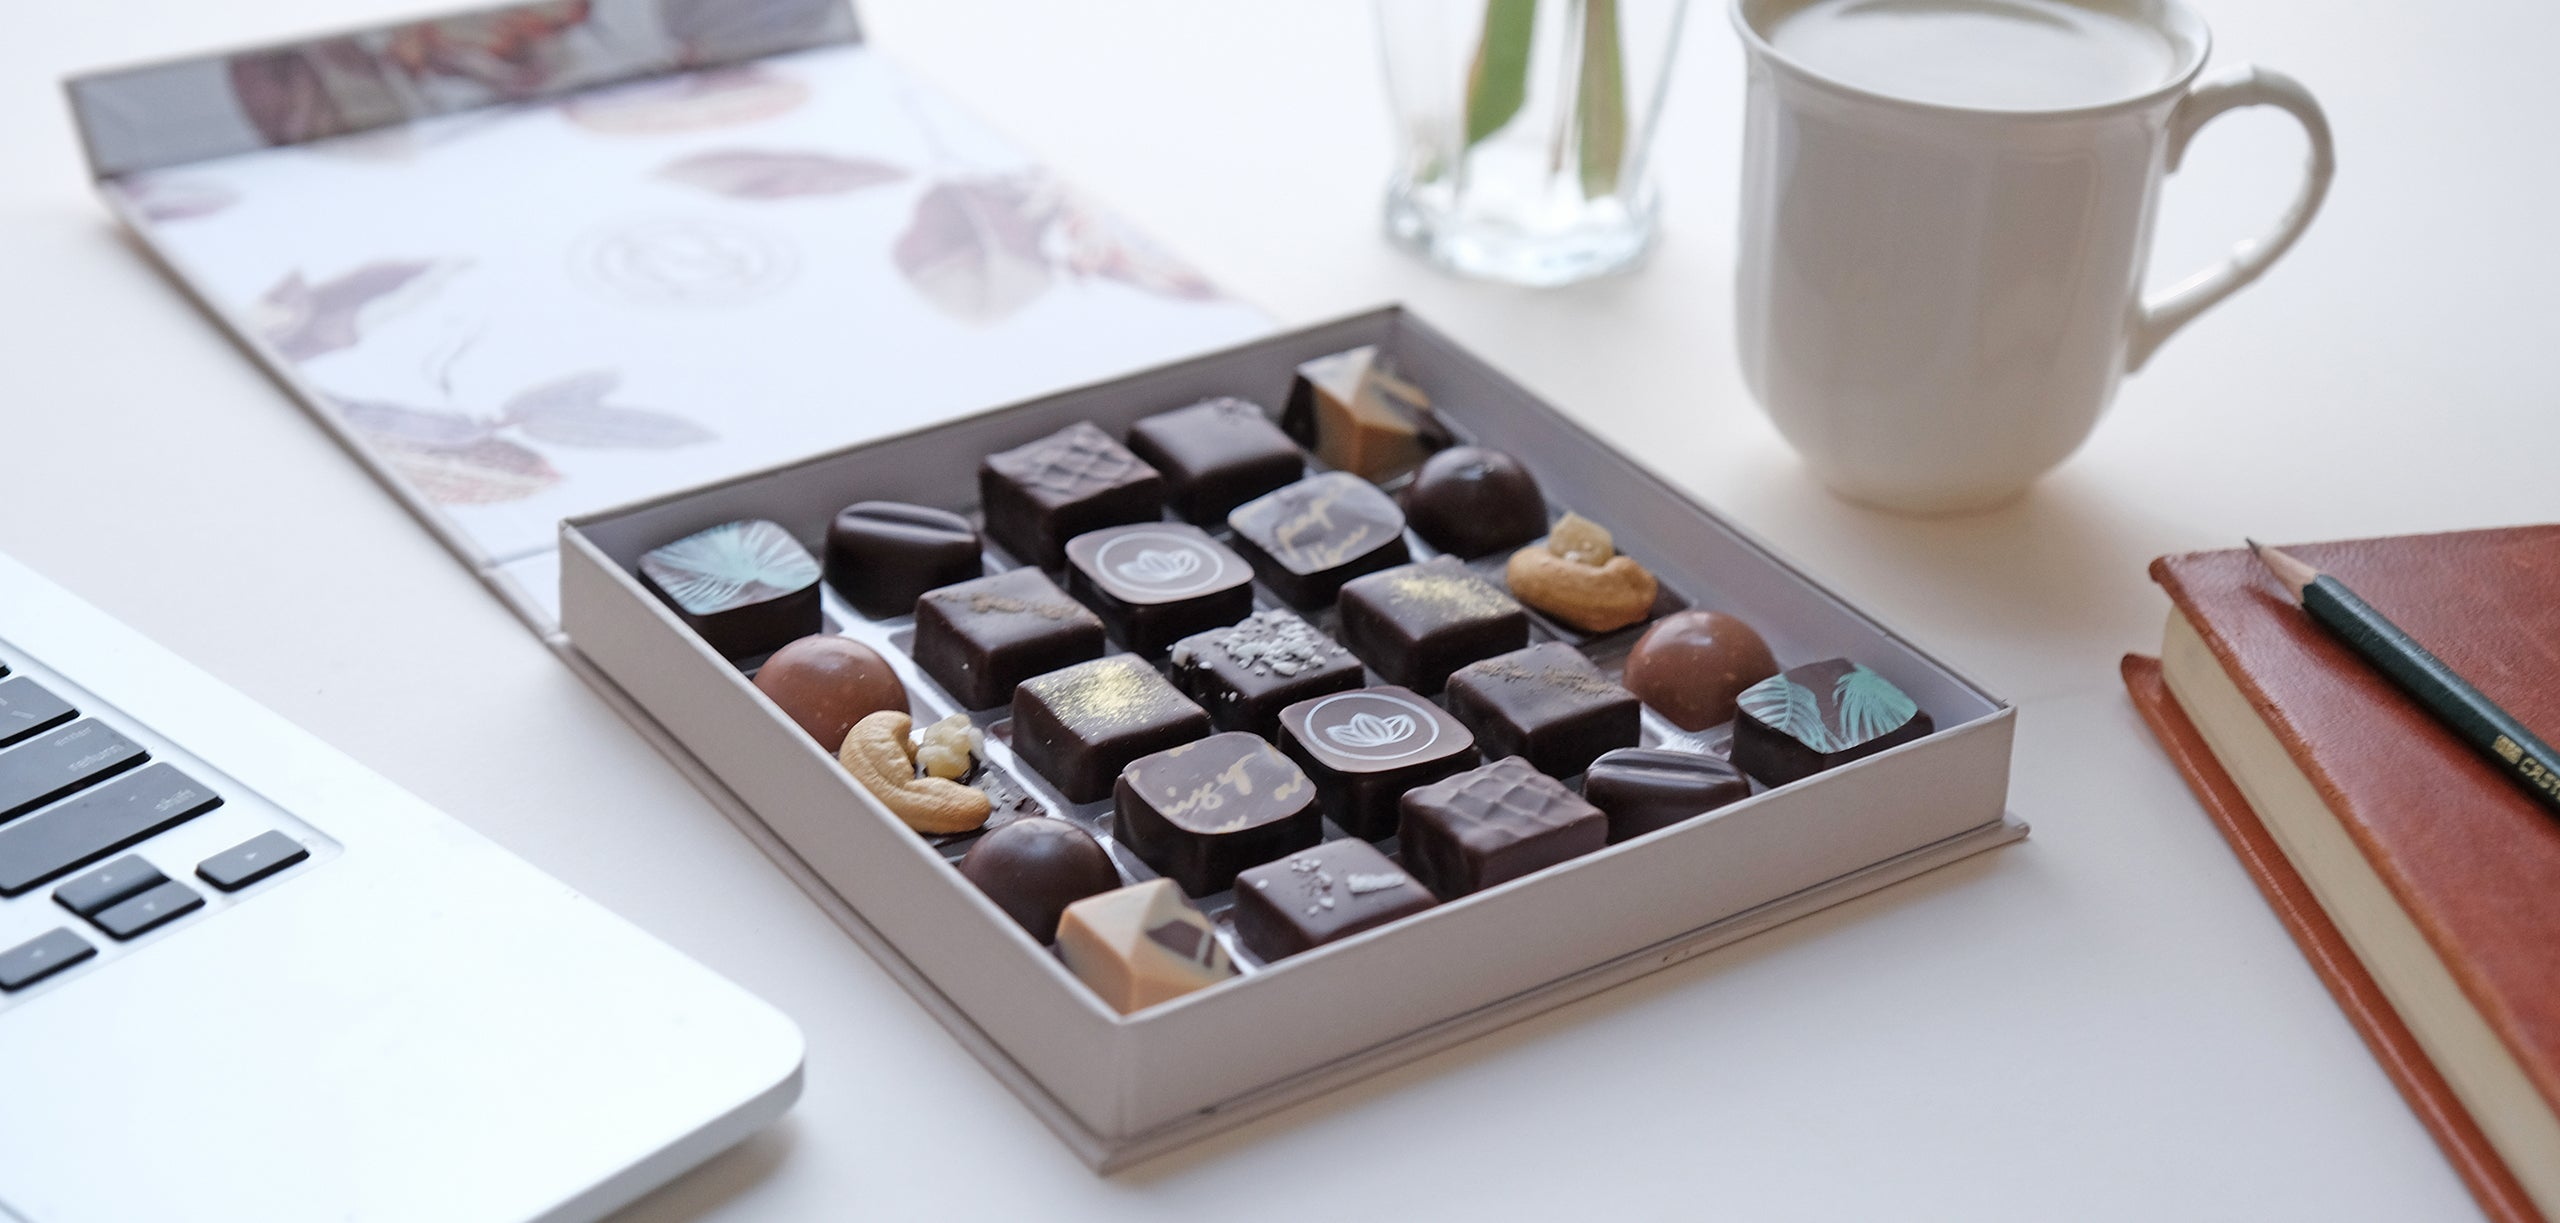 Employee appreciation gifts - The chocolates they really want